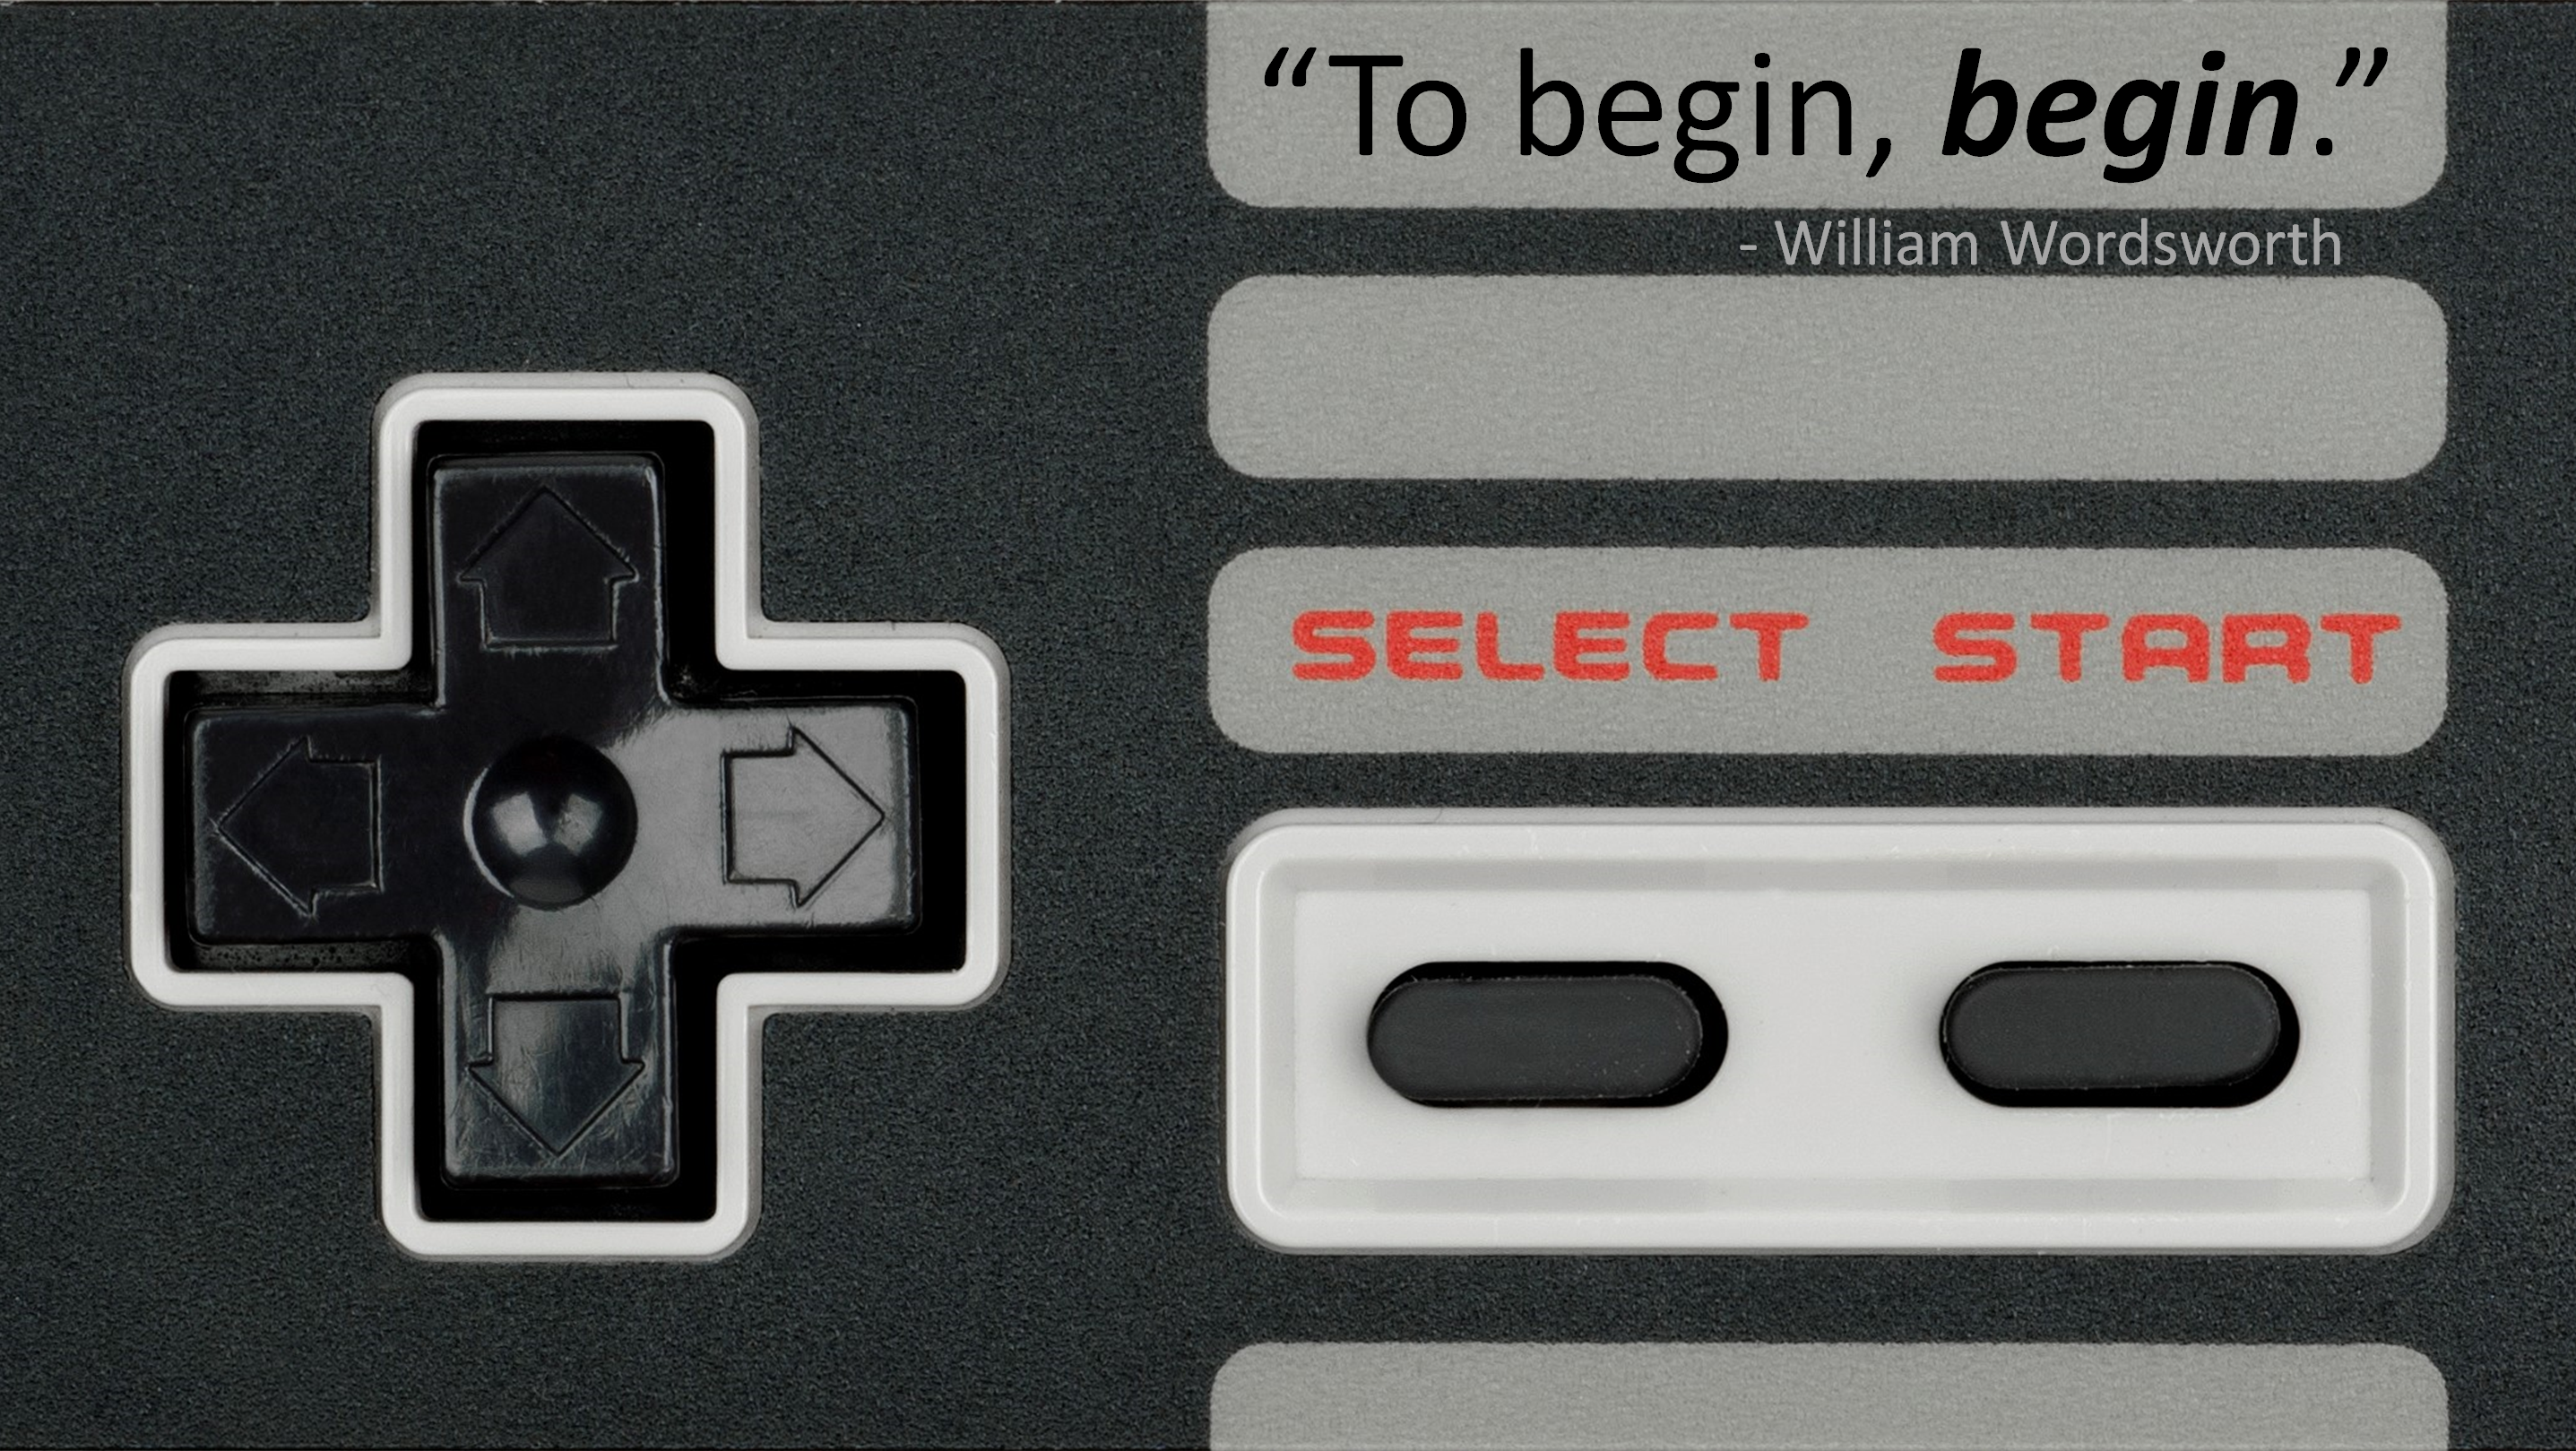 To begin, begin (William Wordsworth) [2874×1619]